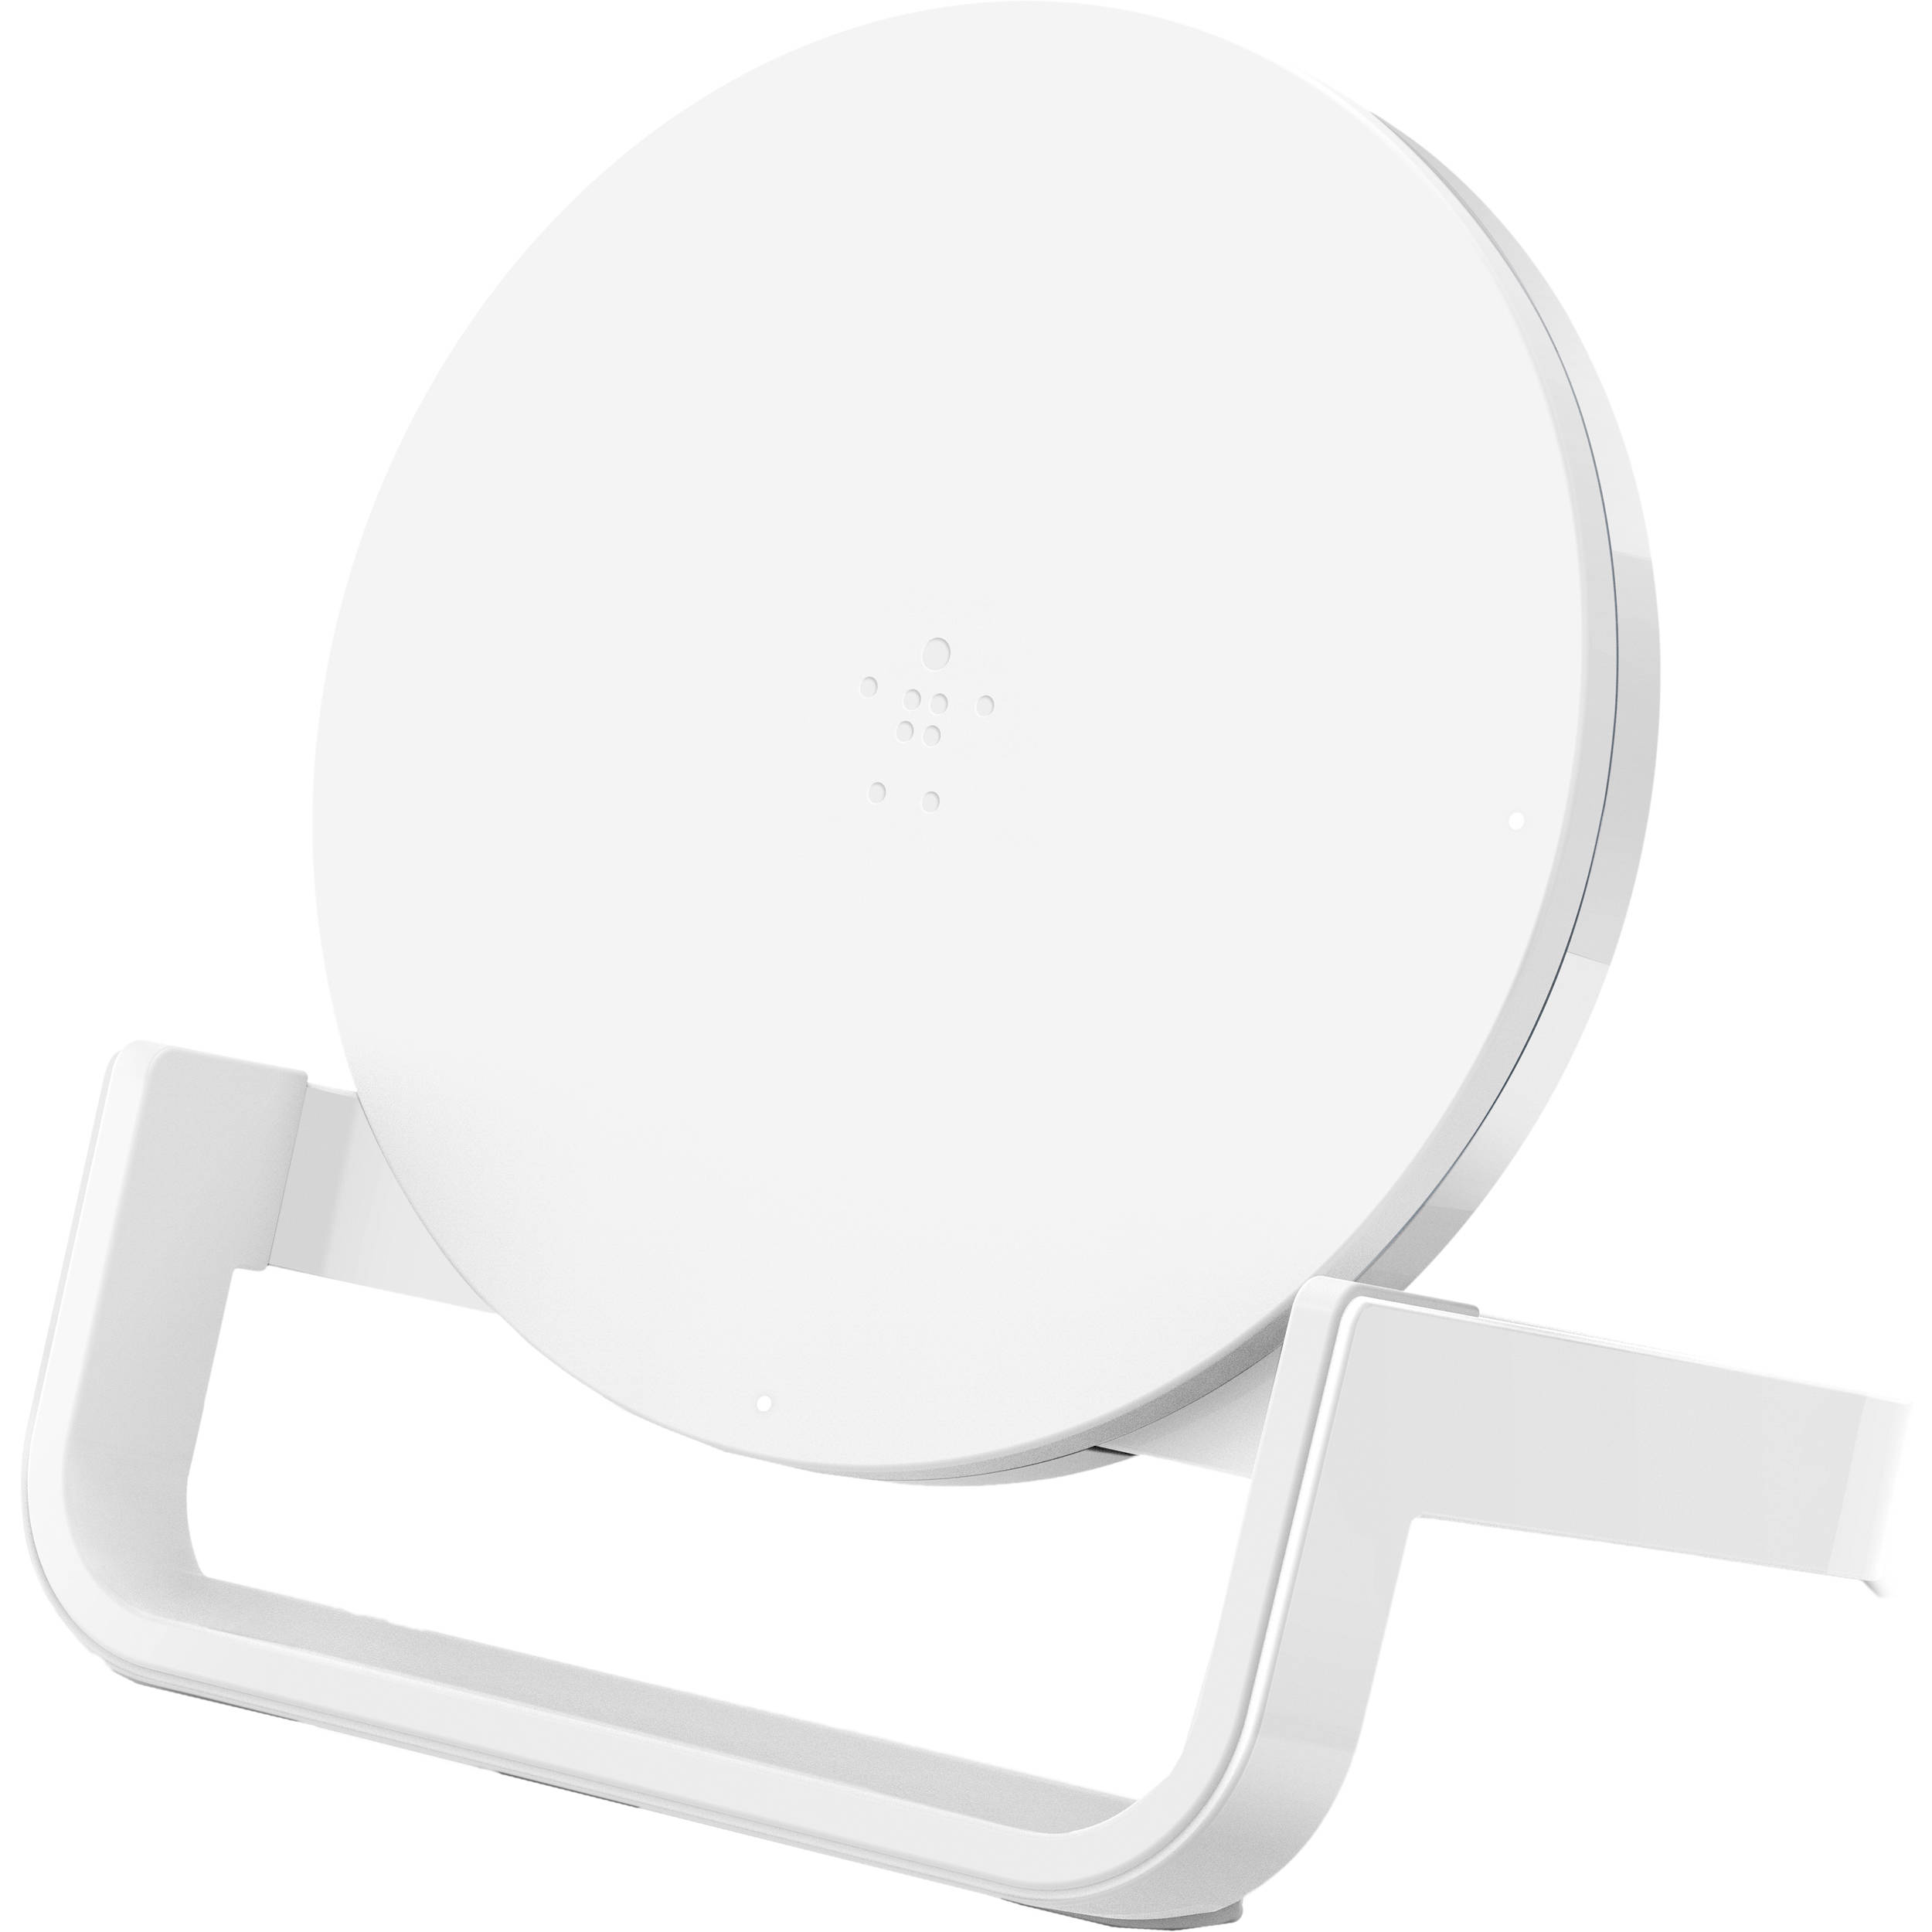 Belkin 10W Wireless Charging Stand white